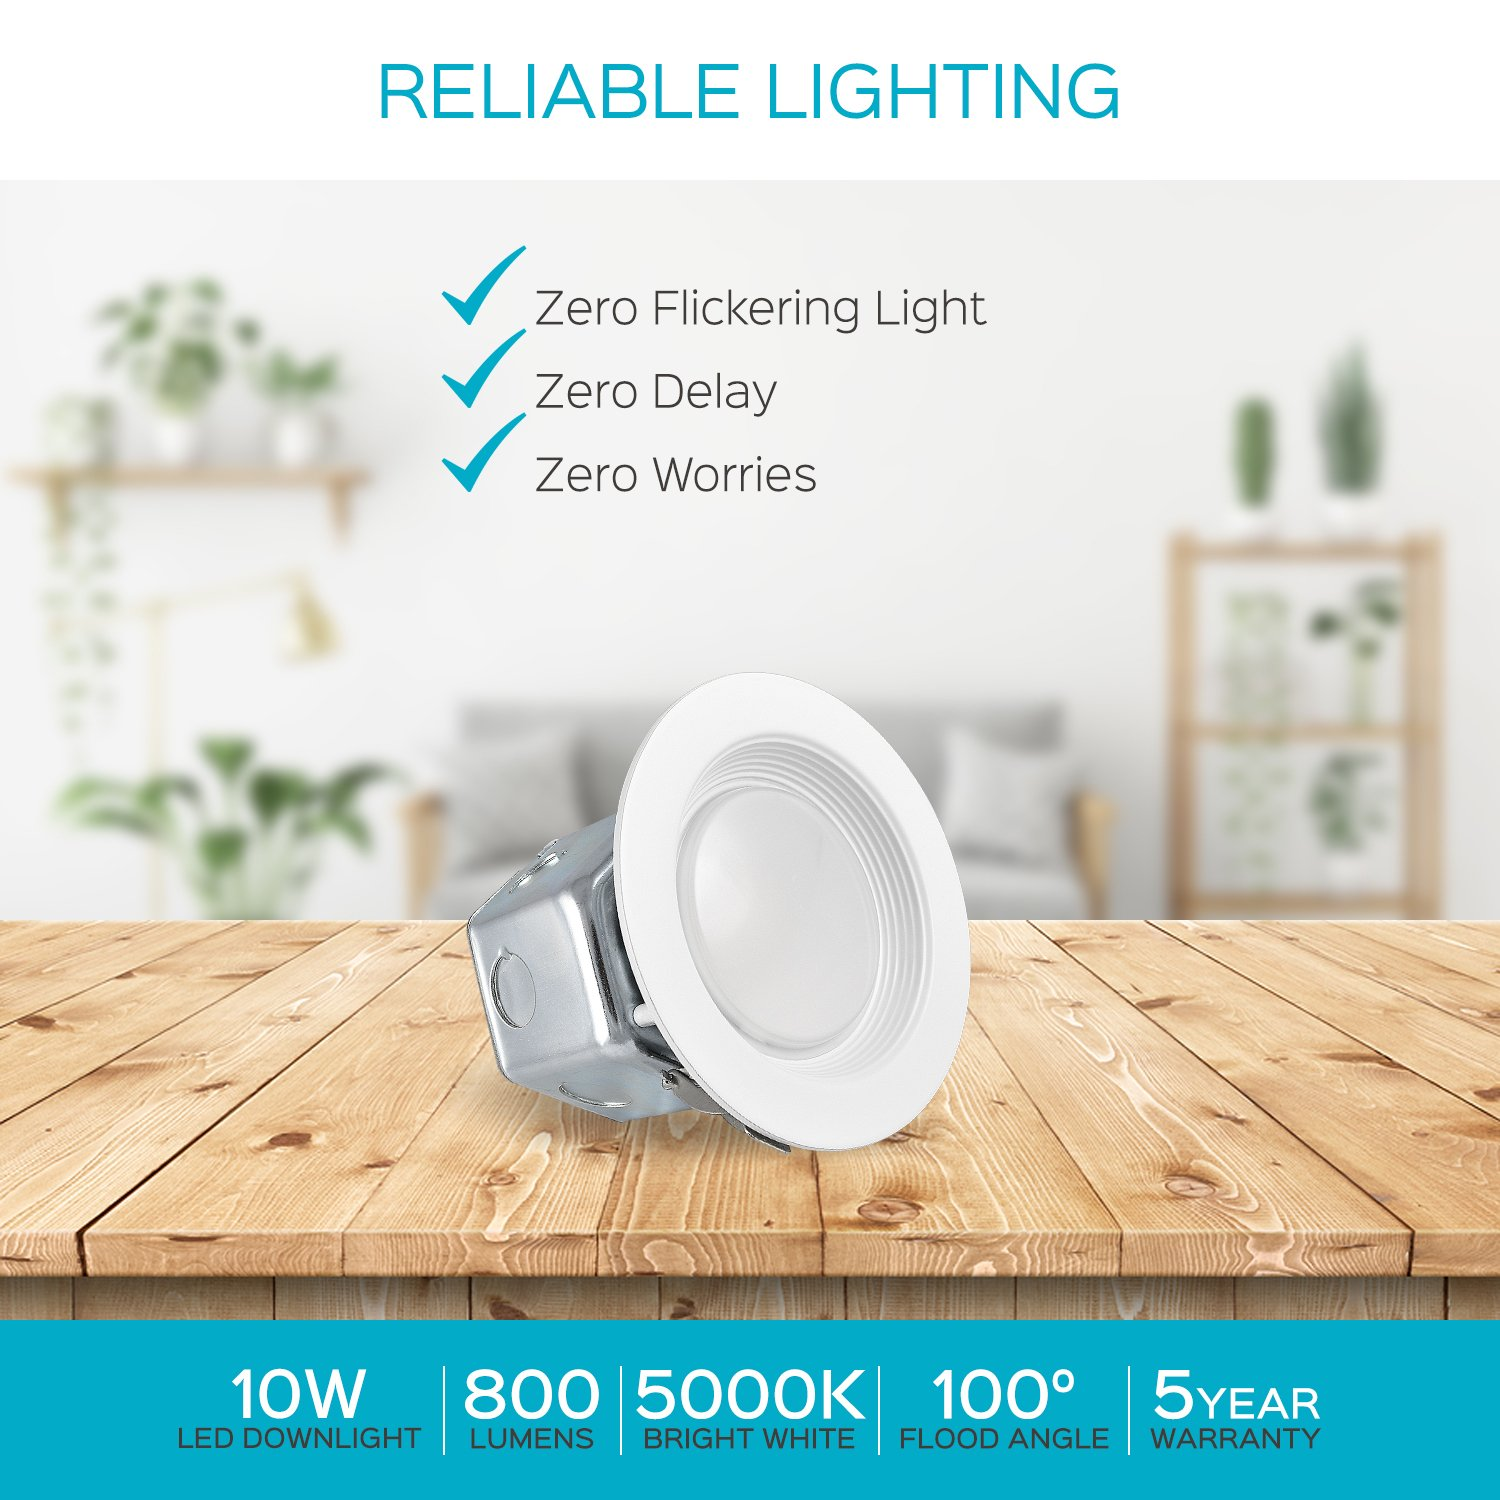 2 Pack 4 Inch Junction Box Led Retrofit Downlight Luxrite 10w 60w Wiring Downlights Equivalent No Can Recessed Lighting 5000k Bright White 800 Lumens Dimmable